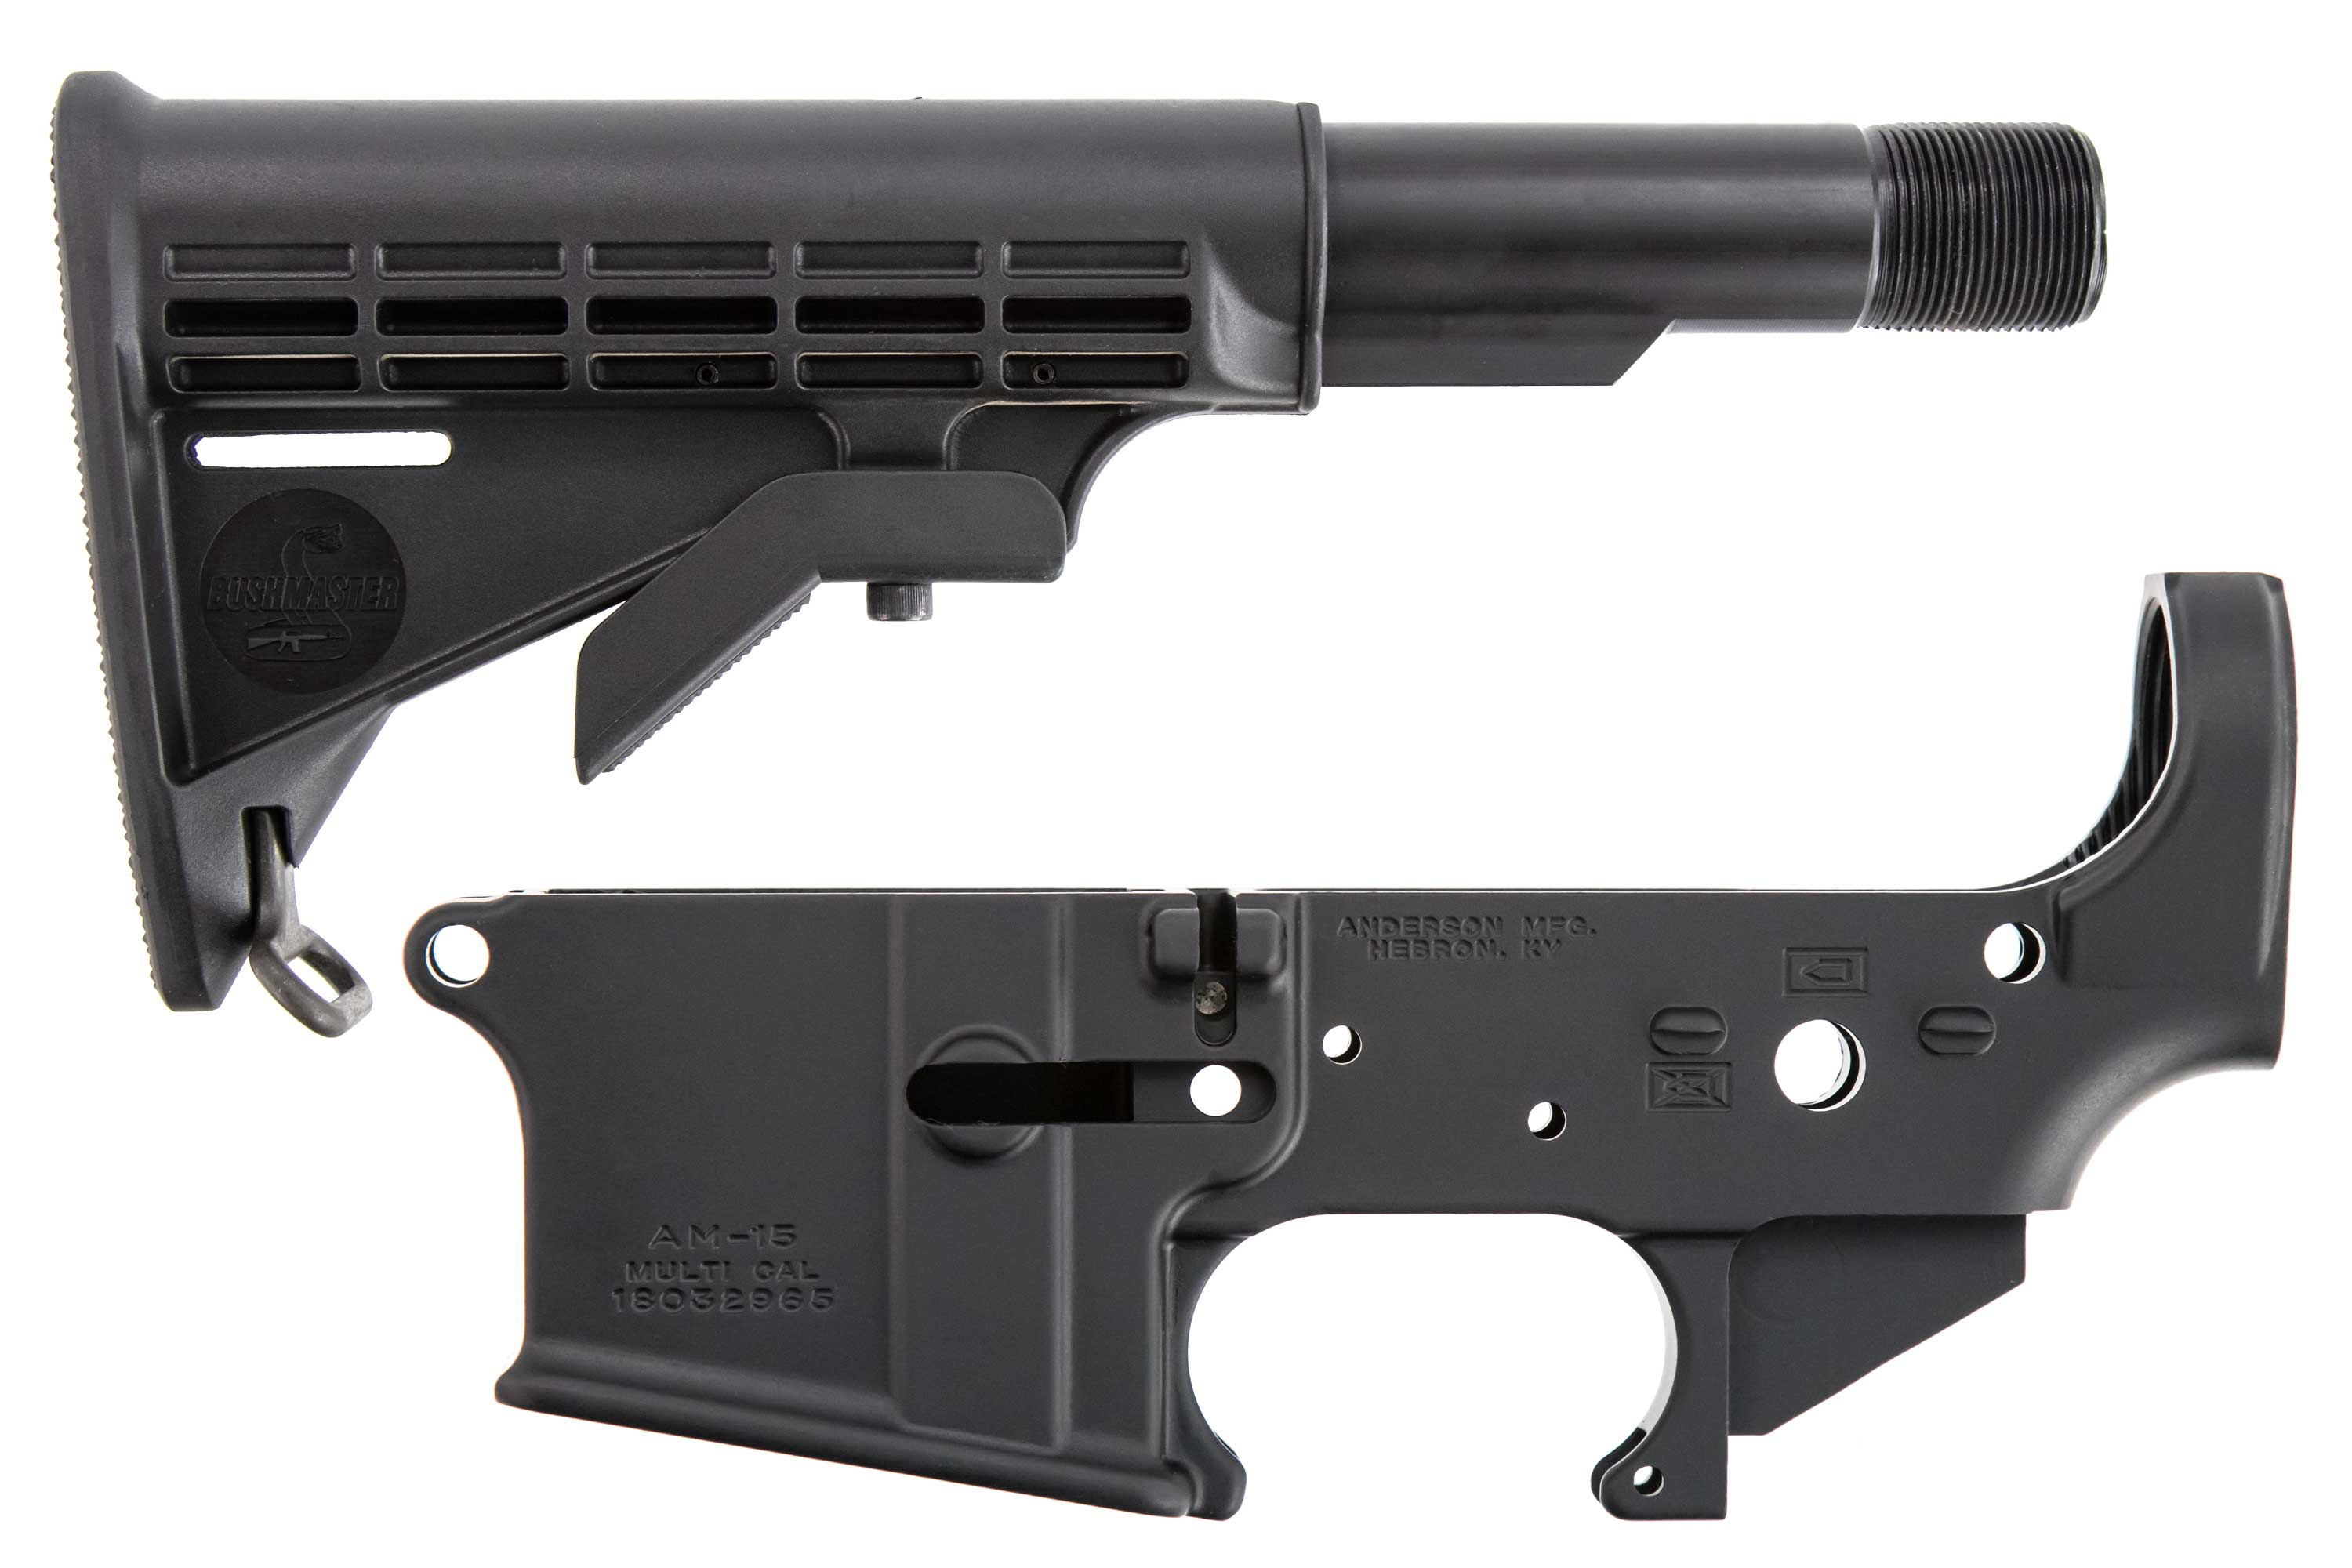 Anderson AM-15 Stripped Lower + Fixed Stock Combo - $49 99 (Free S/H on  Firearms)